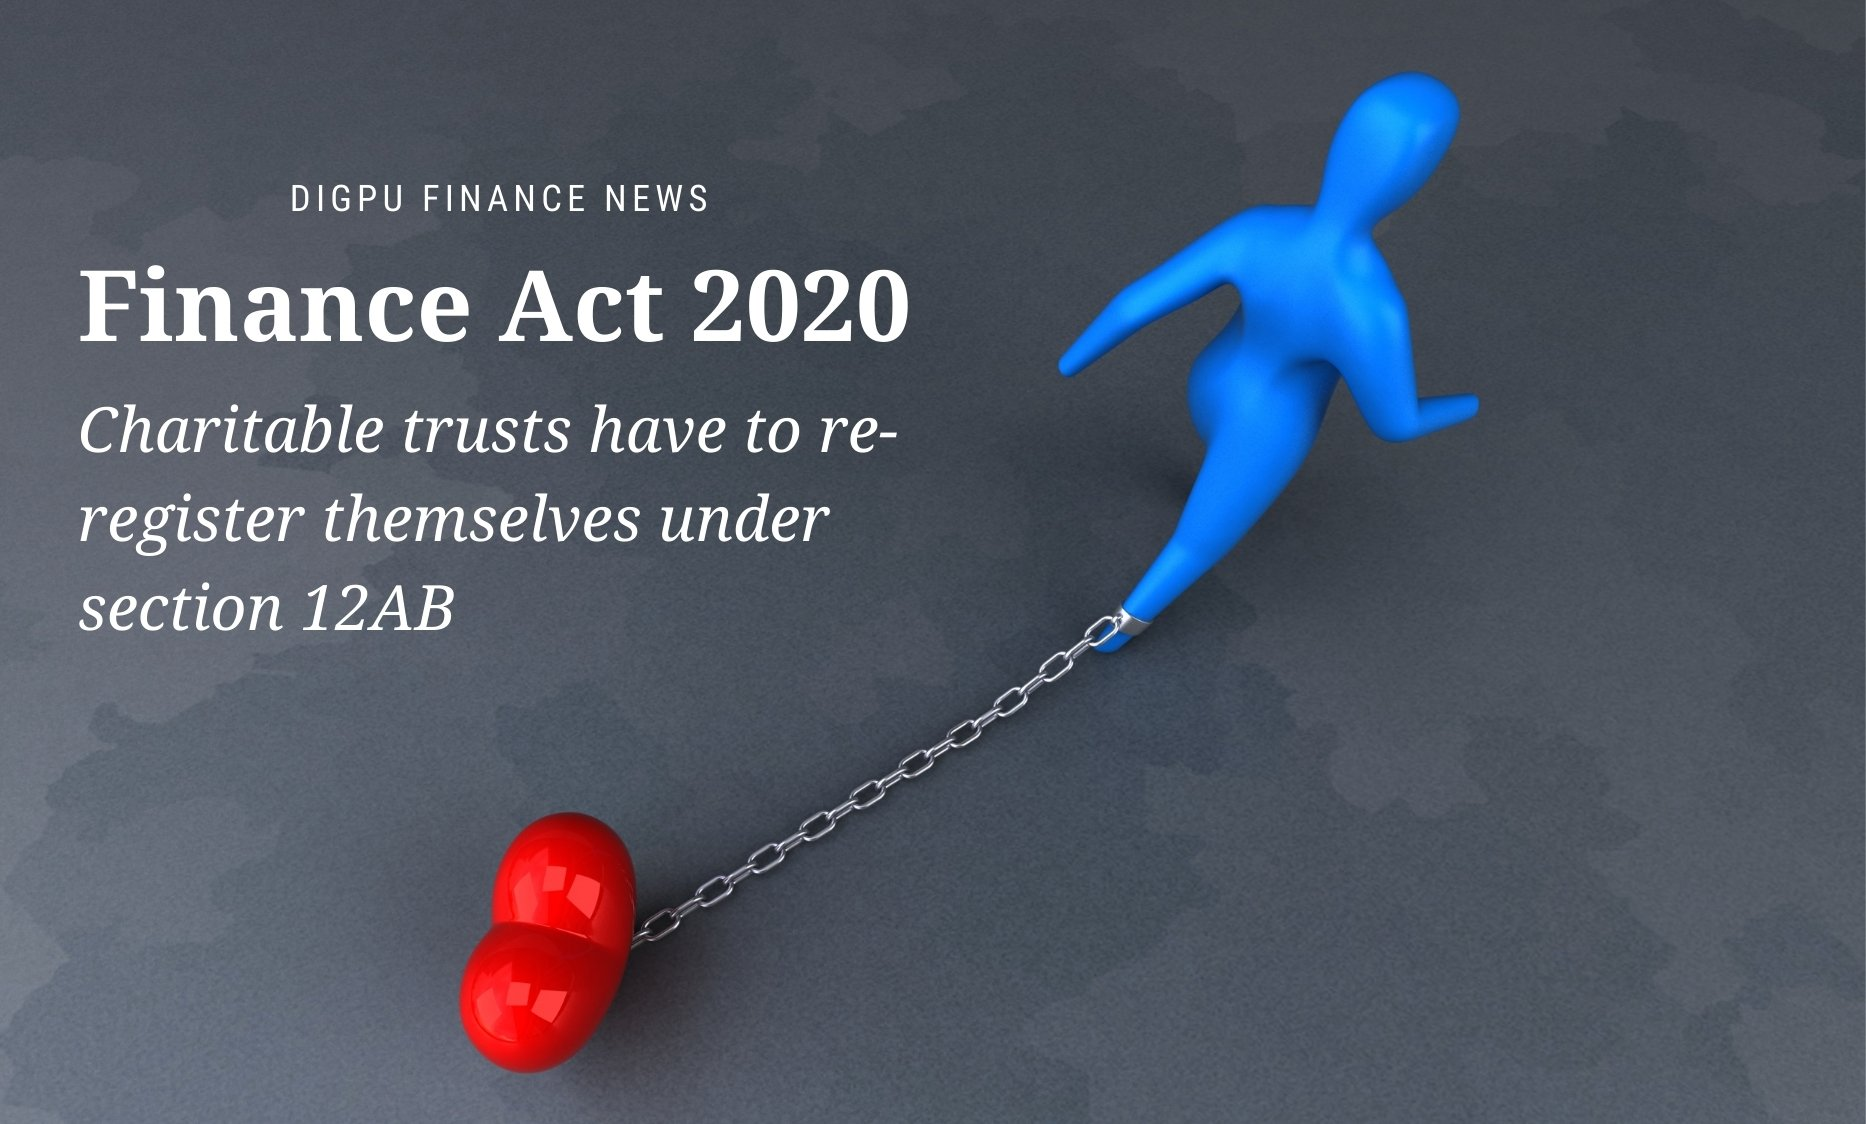 Finance Act 2020 - Charitable trusts have to re-register themselves under section 12AB